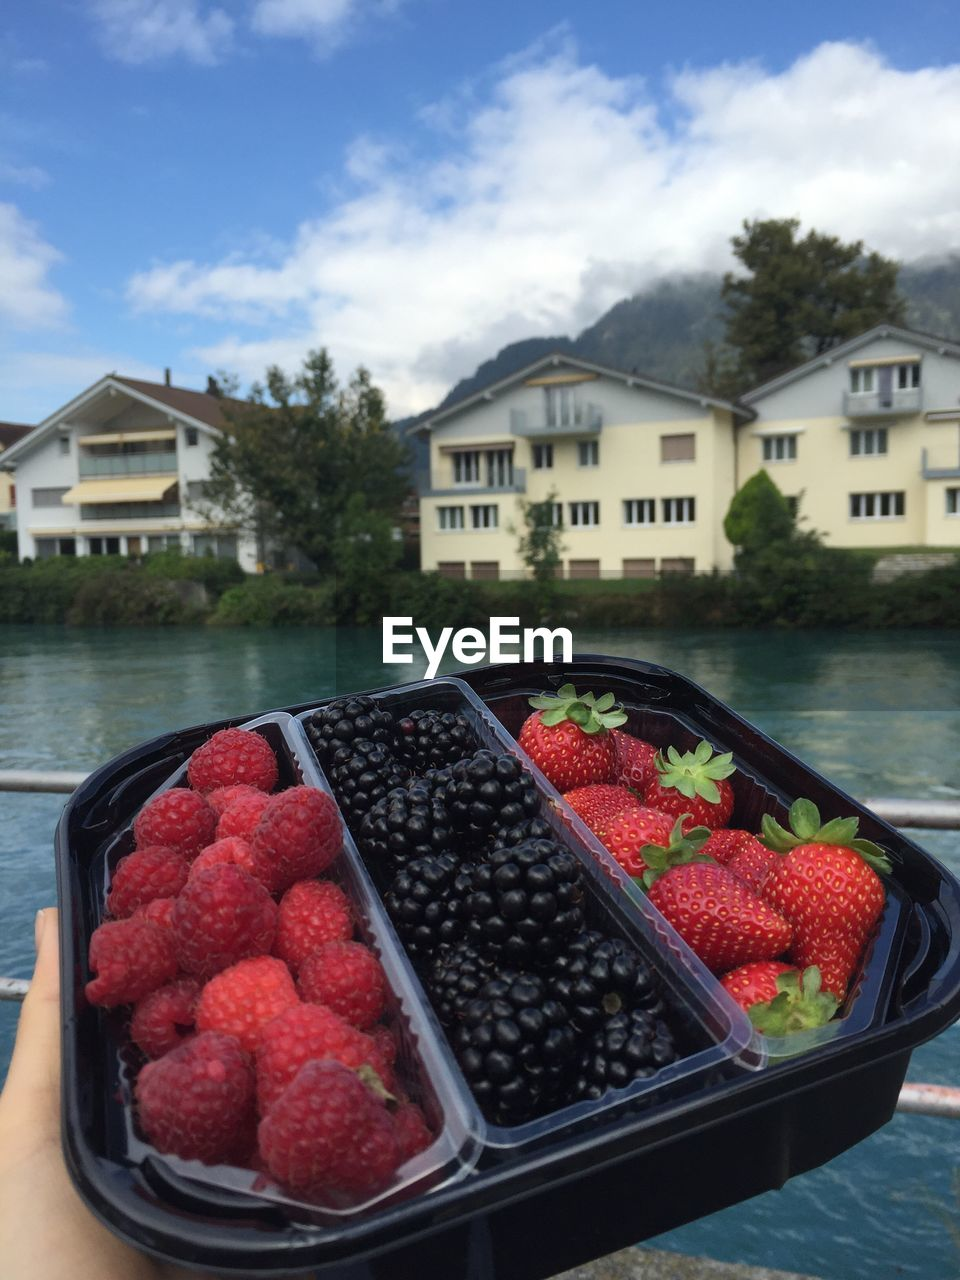 RED FRUITS IN FRONT OF BUILDINGS